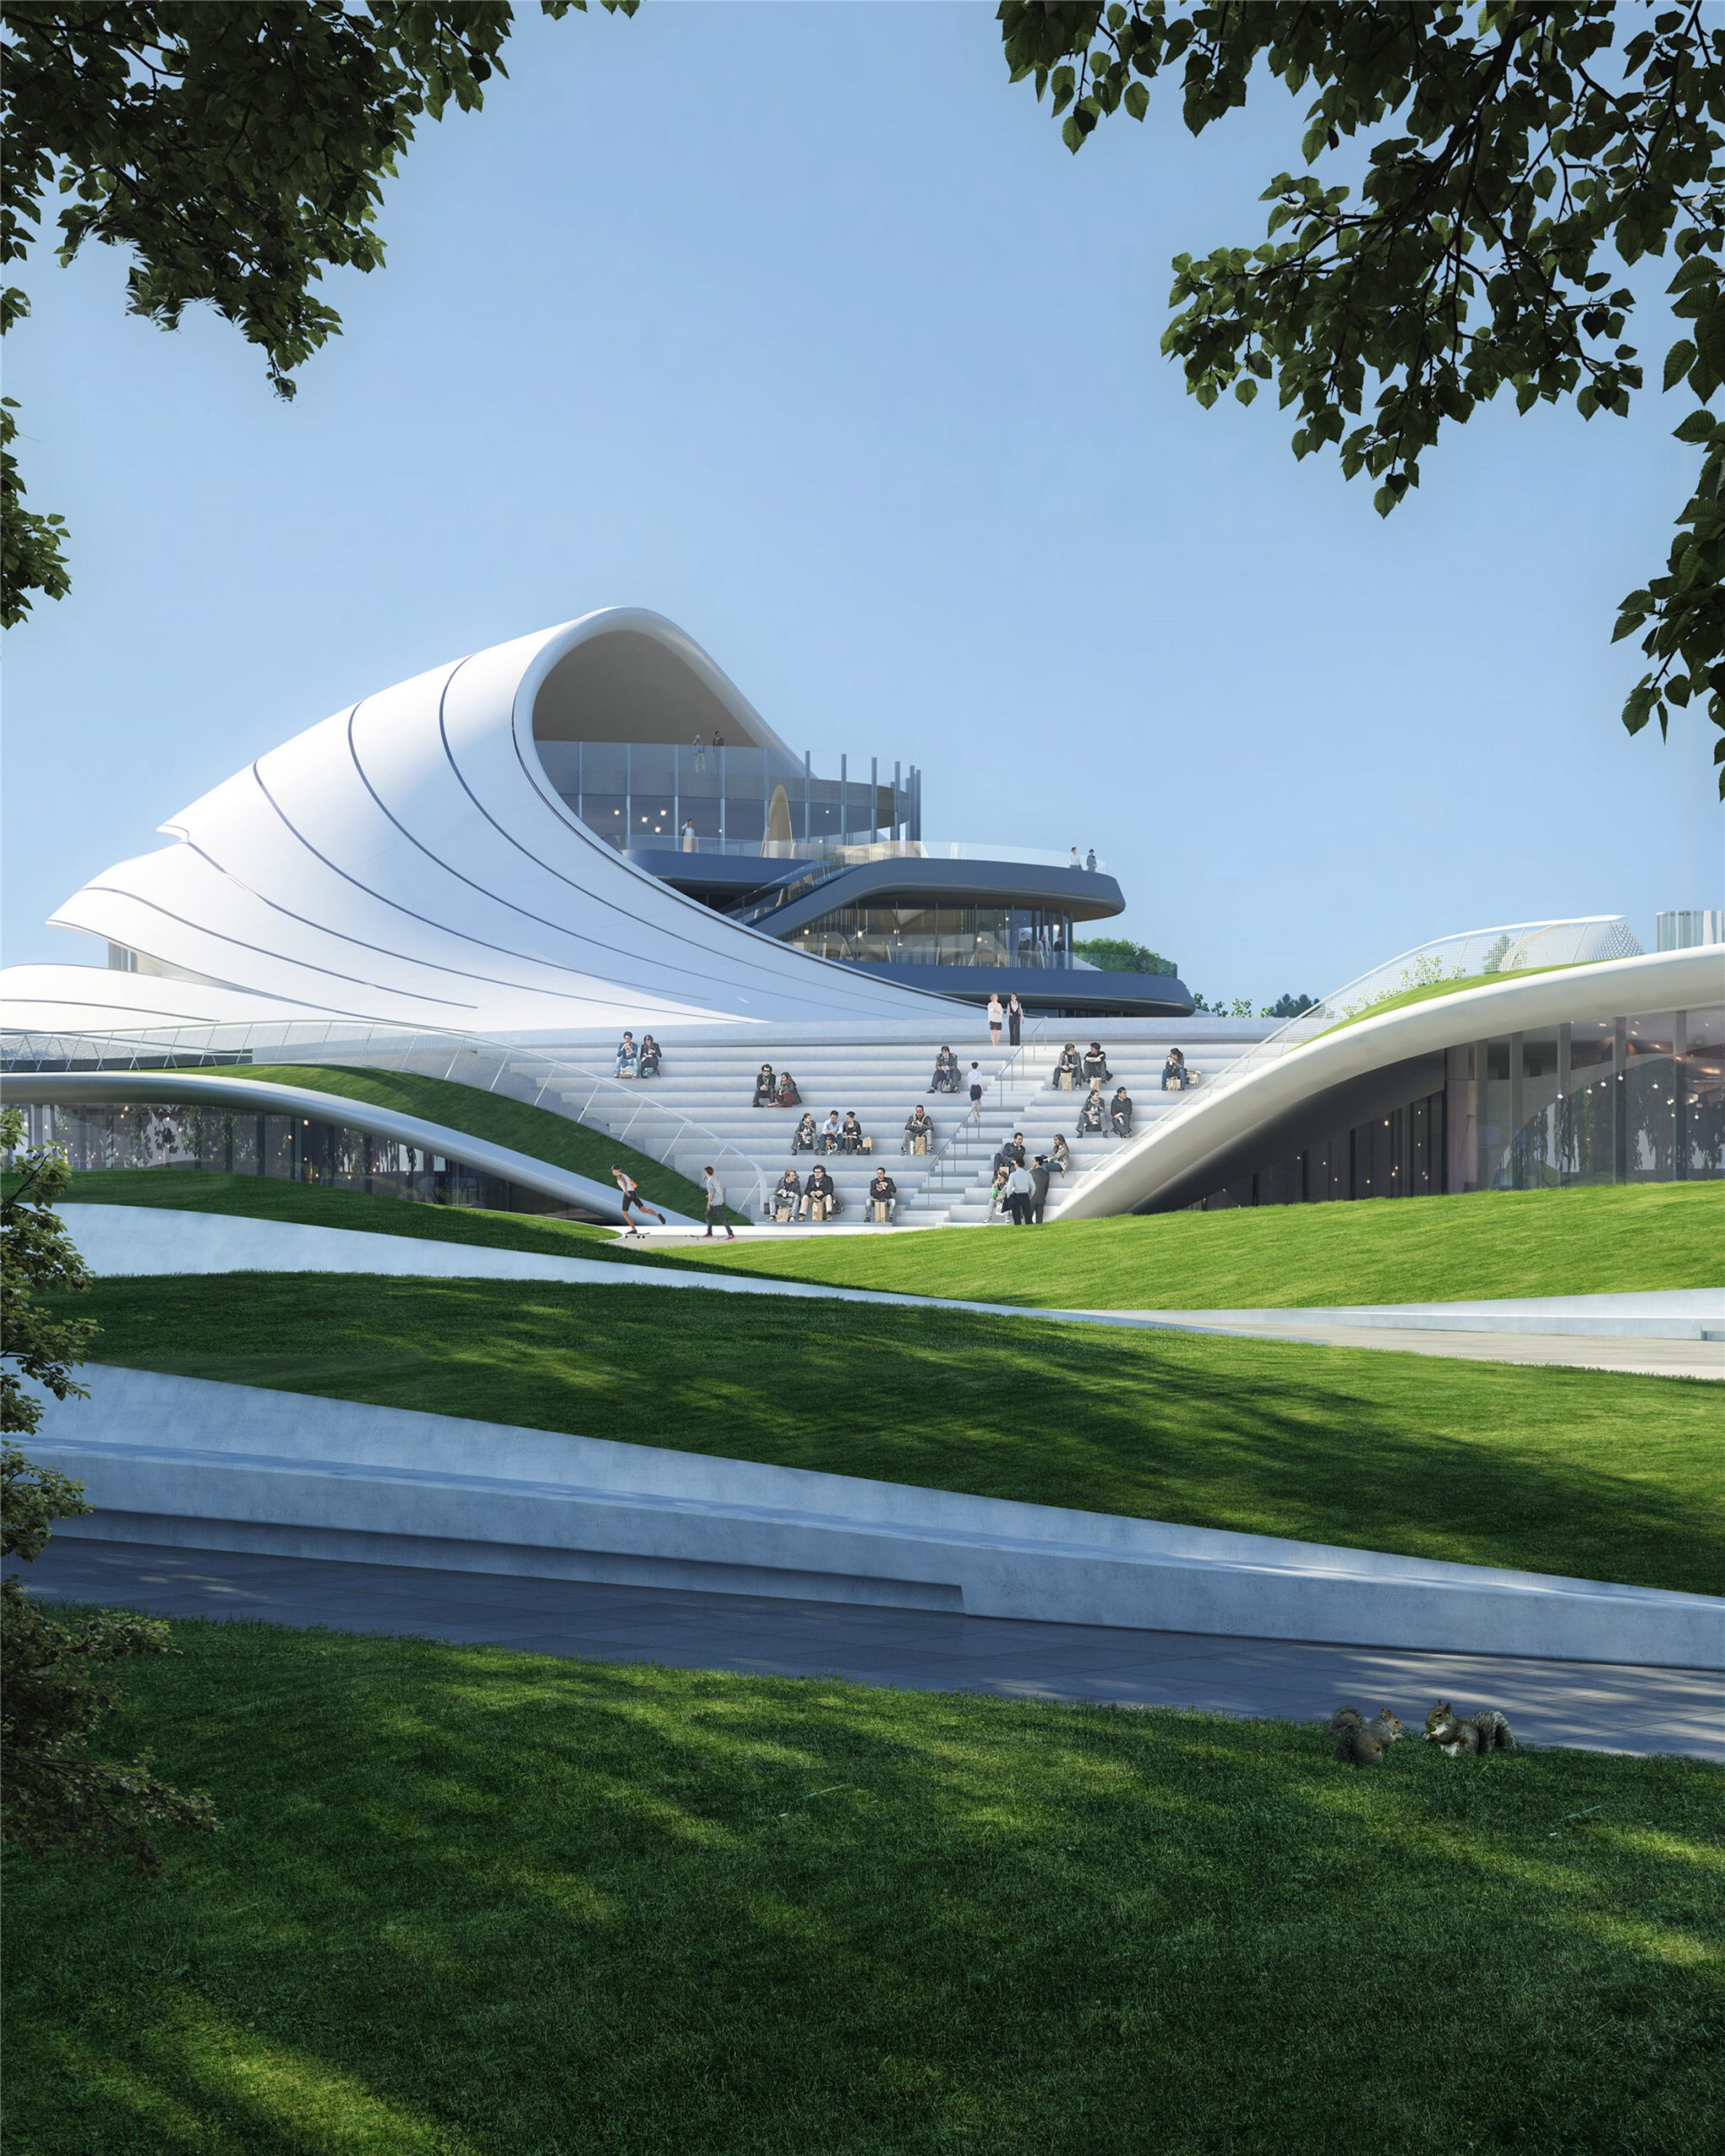 Jiaxing Civic Centre has amphitheatre-style seating